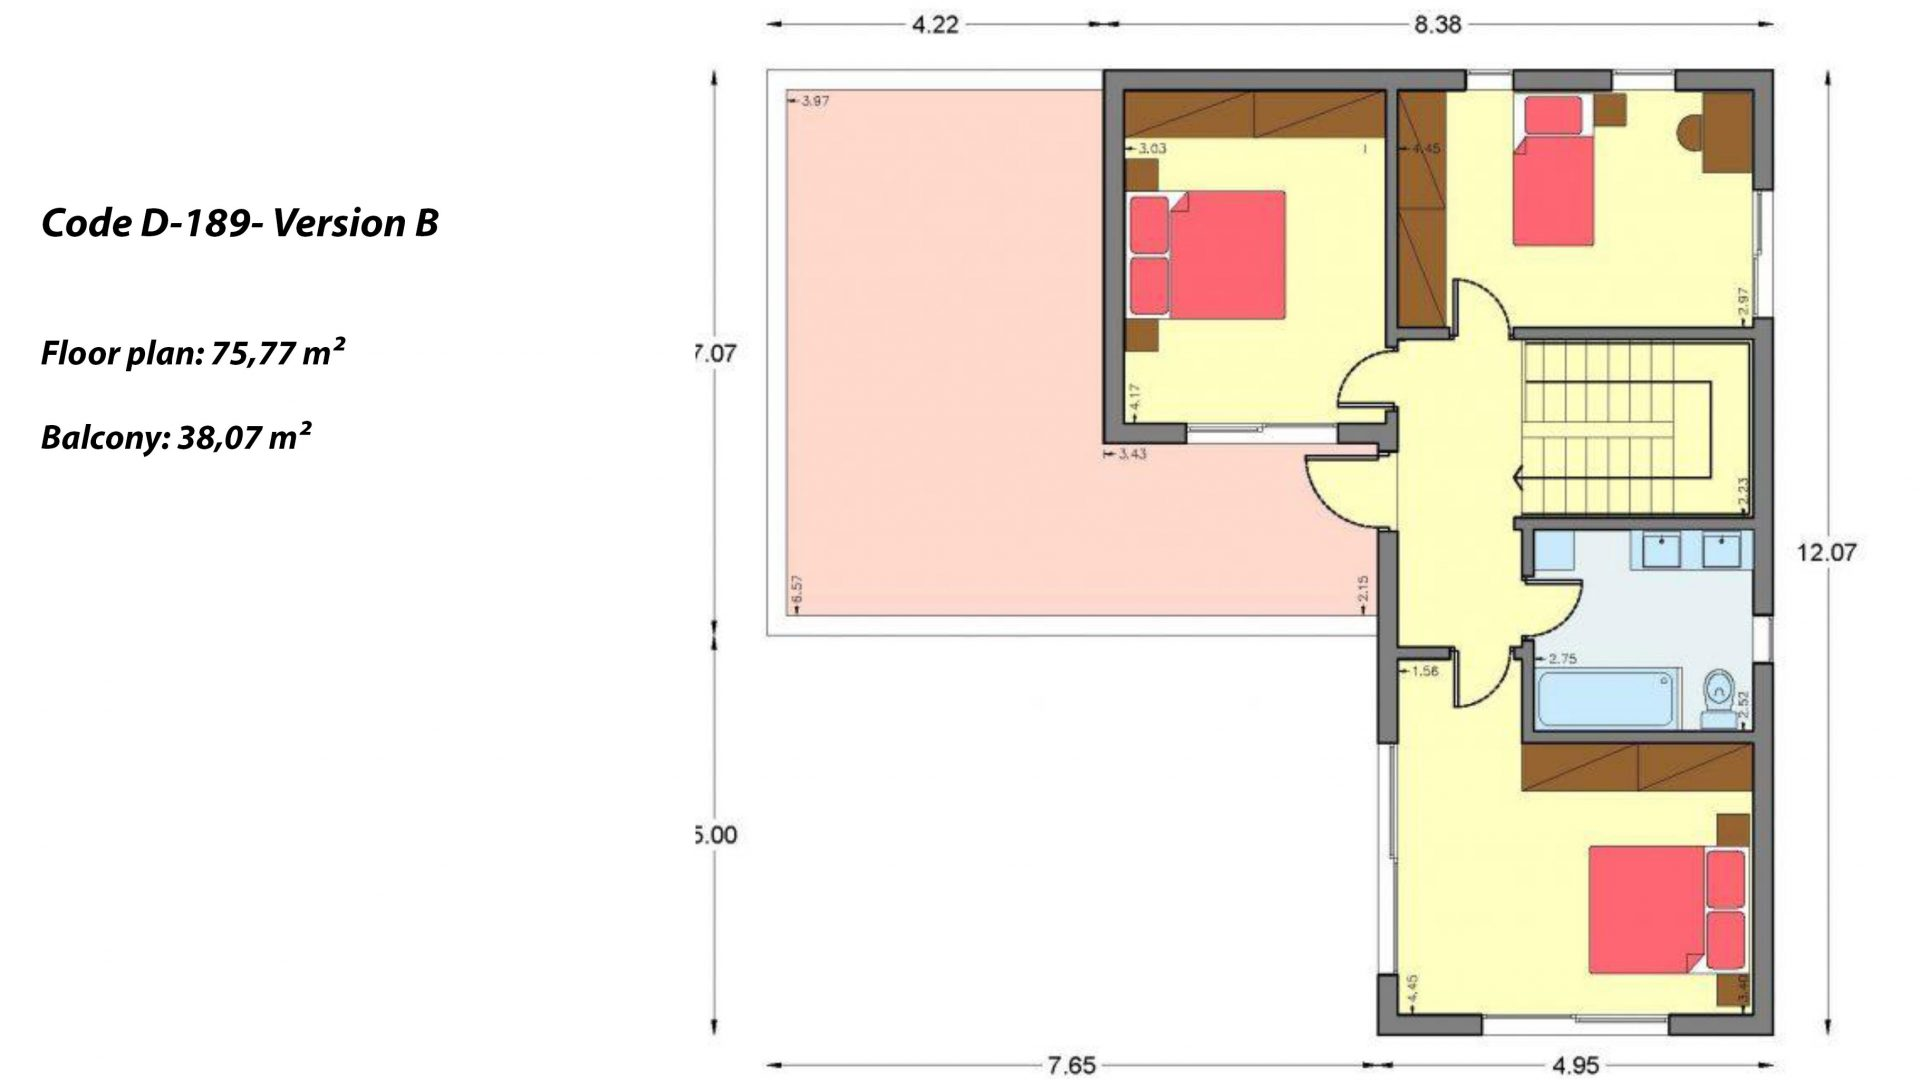 2-story house D-189, with a total area of 189.61 sq.m. ,roofed areas 38.90 m²,balconies 38.07 m²